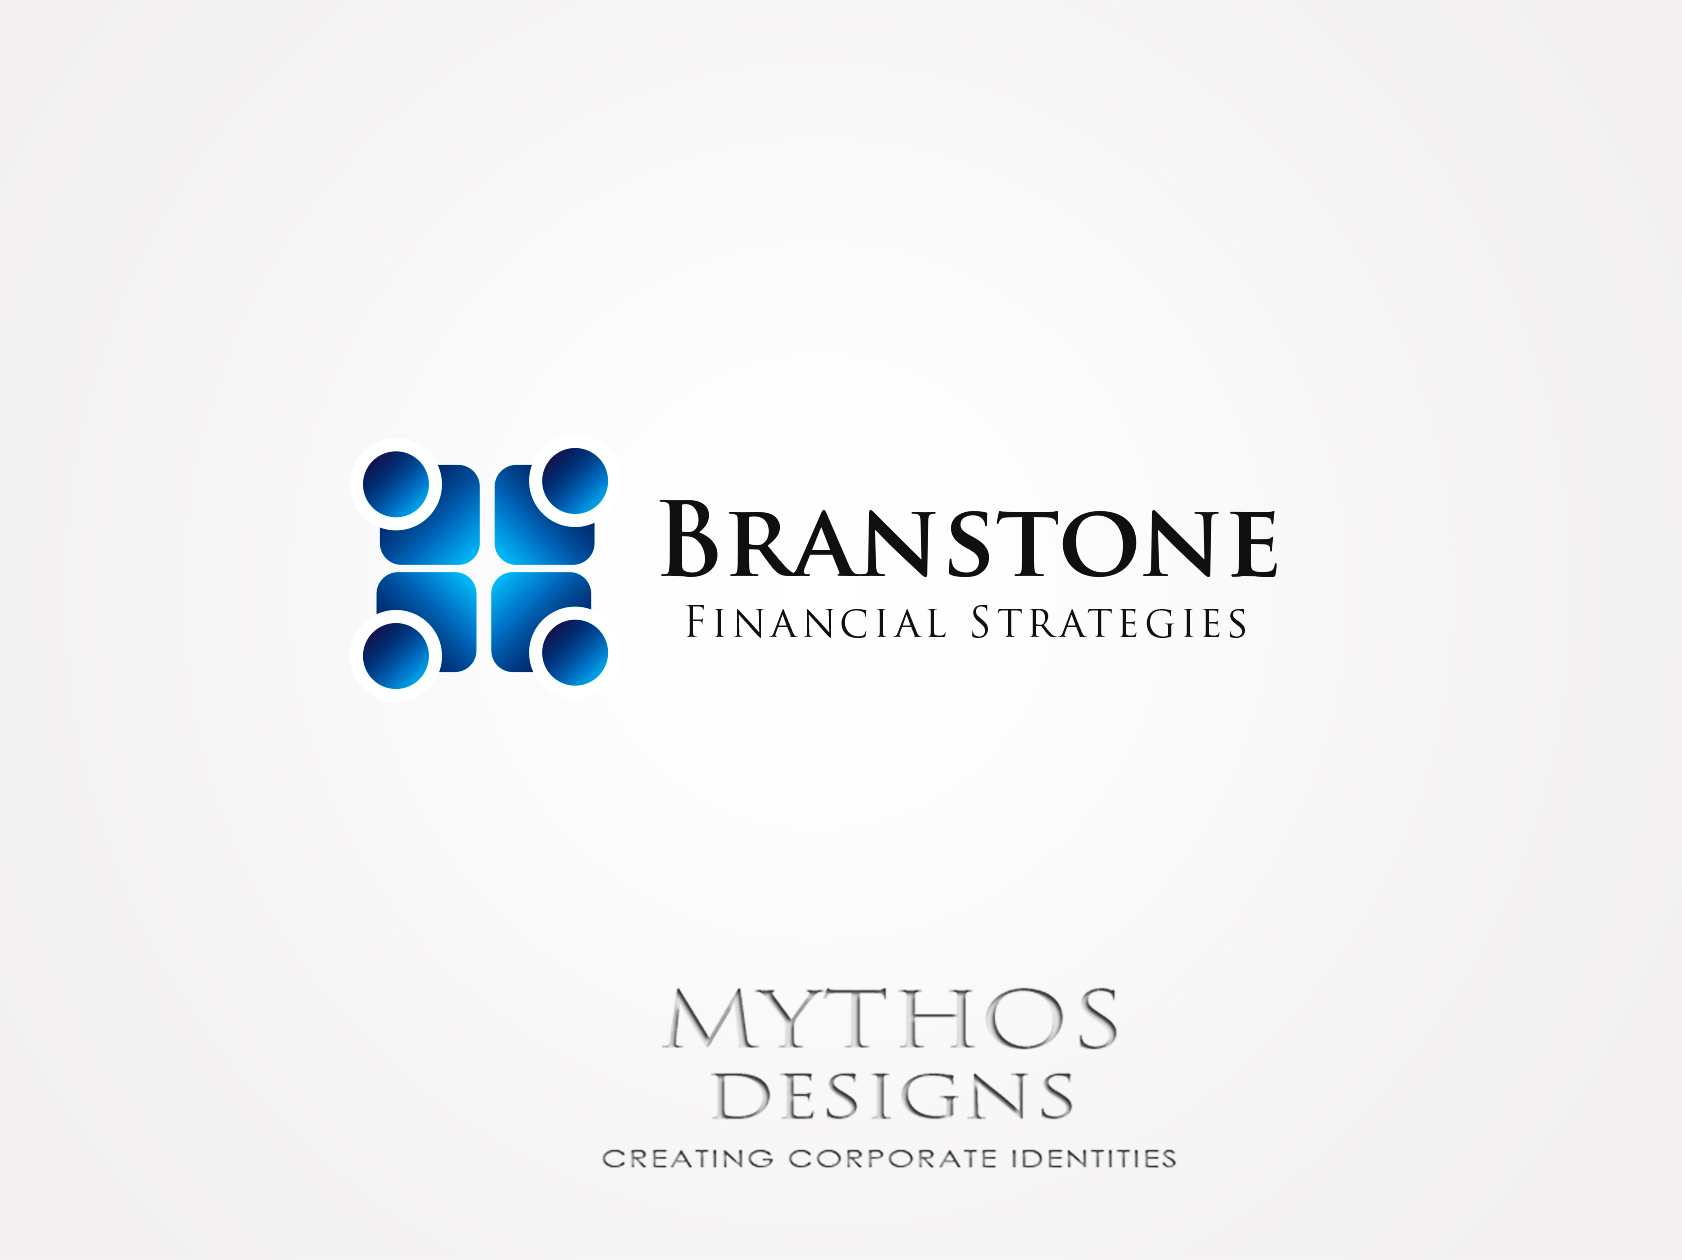 Logo Design by Mythos Designs - Entry No. 4 in the Logo Design Contest Inspiring Logo Design for Branstone Financial Strategies.